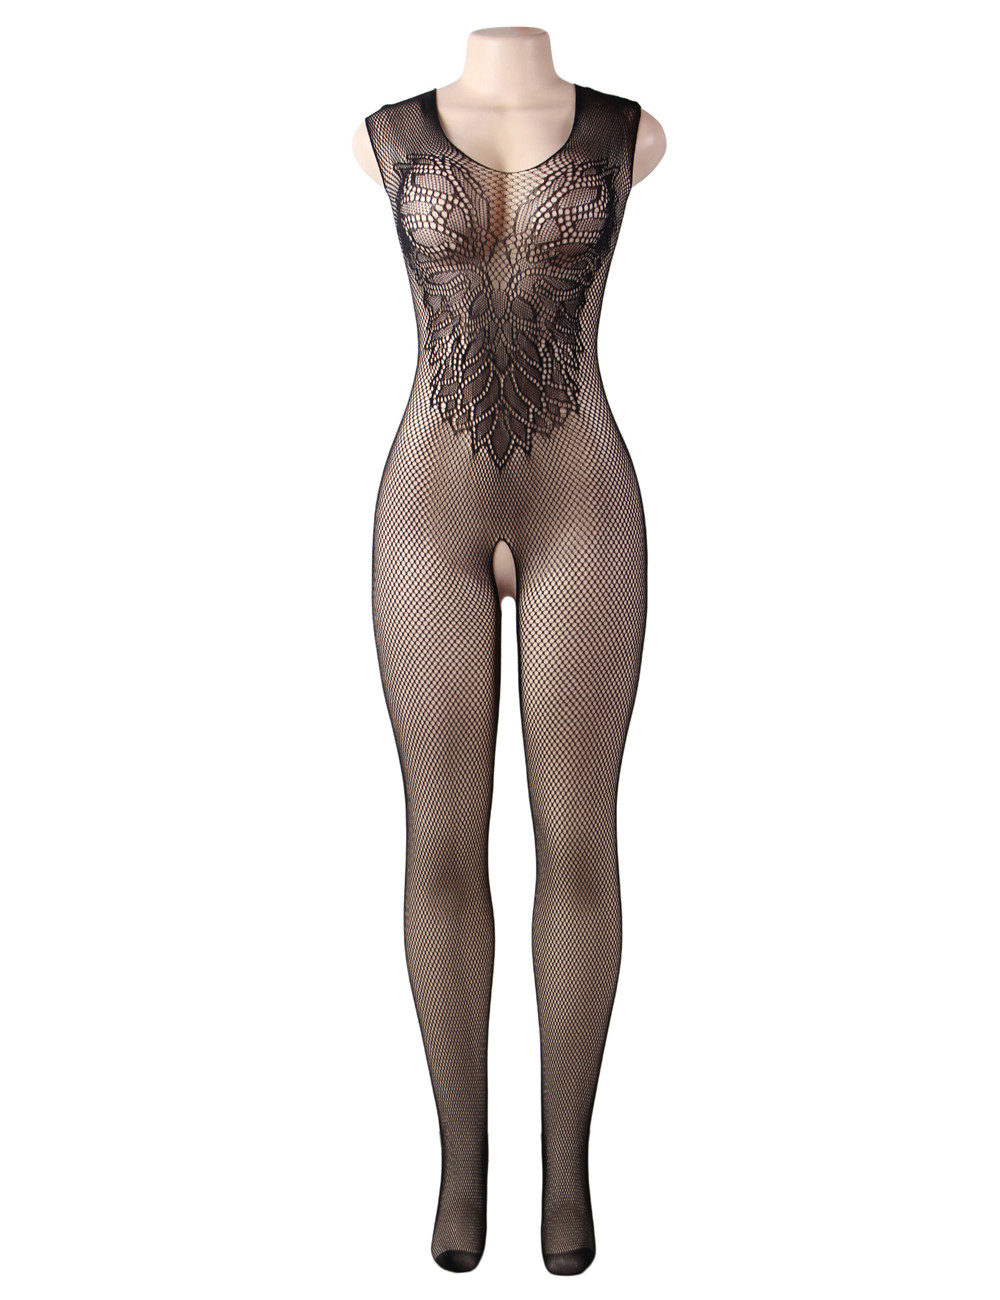 New Sexy Lingerie Teddies Bodysuits Hot Erotic Lingerie Body Suit Elasticity Mesh Body Bodystocking Sexy Underwear Costumes Cats